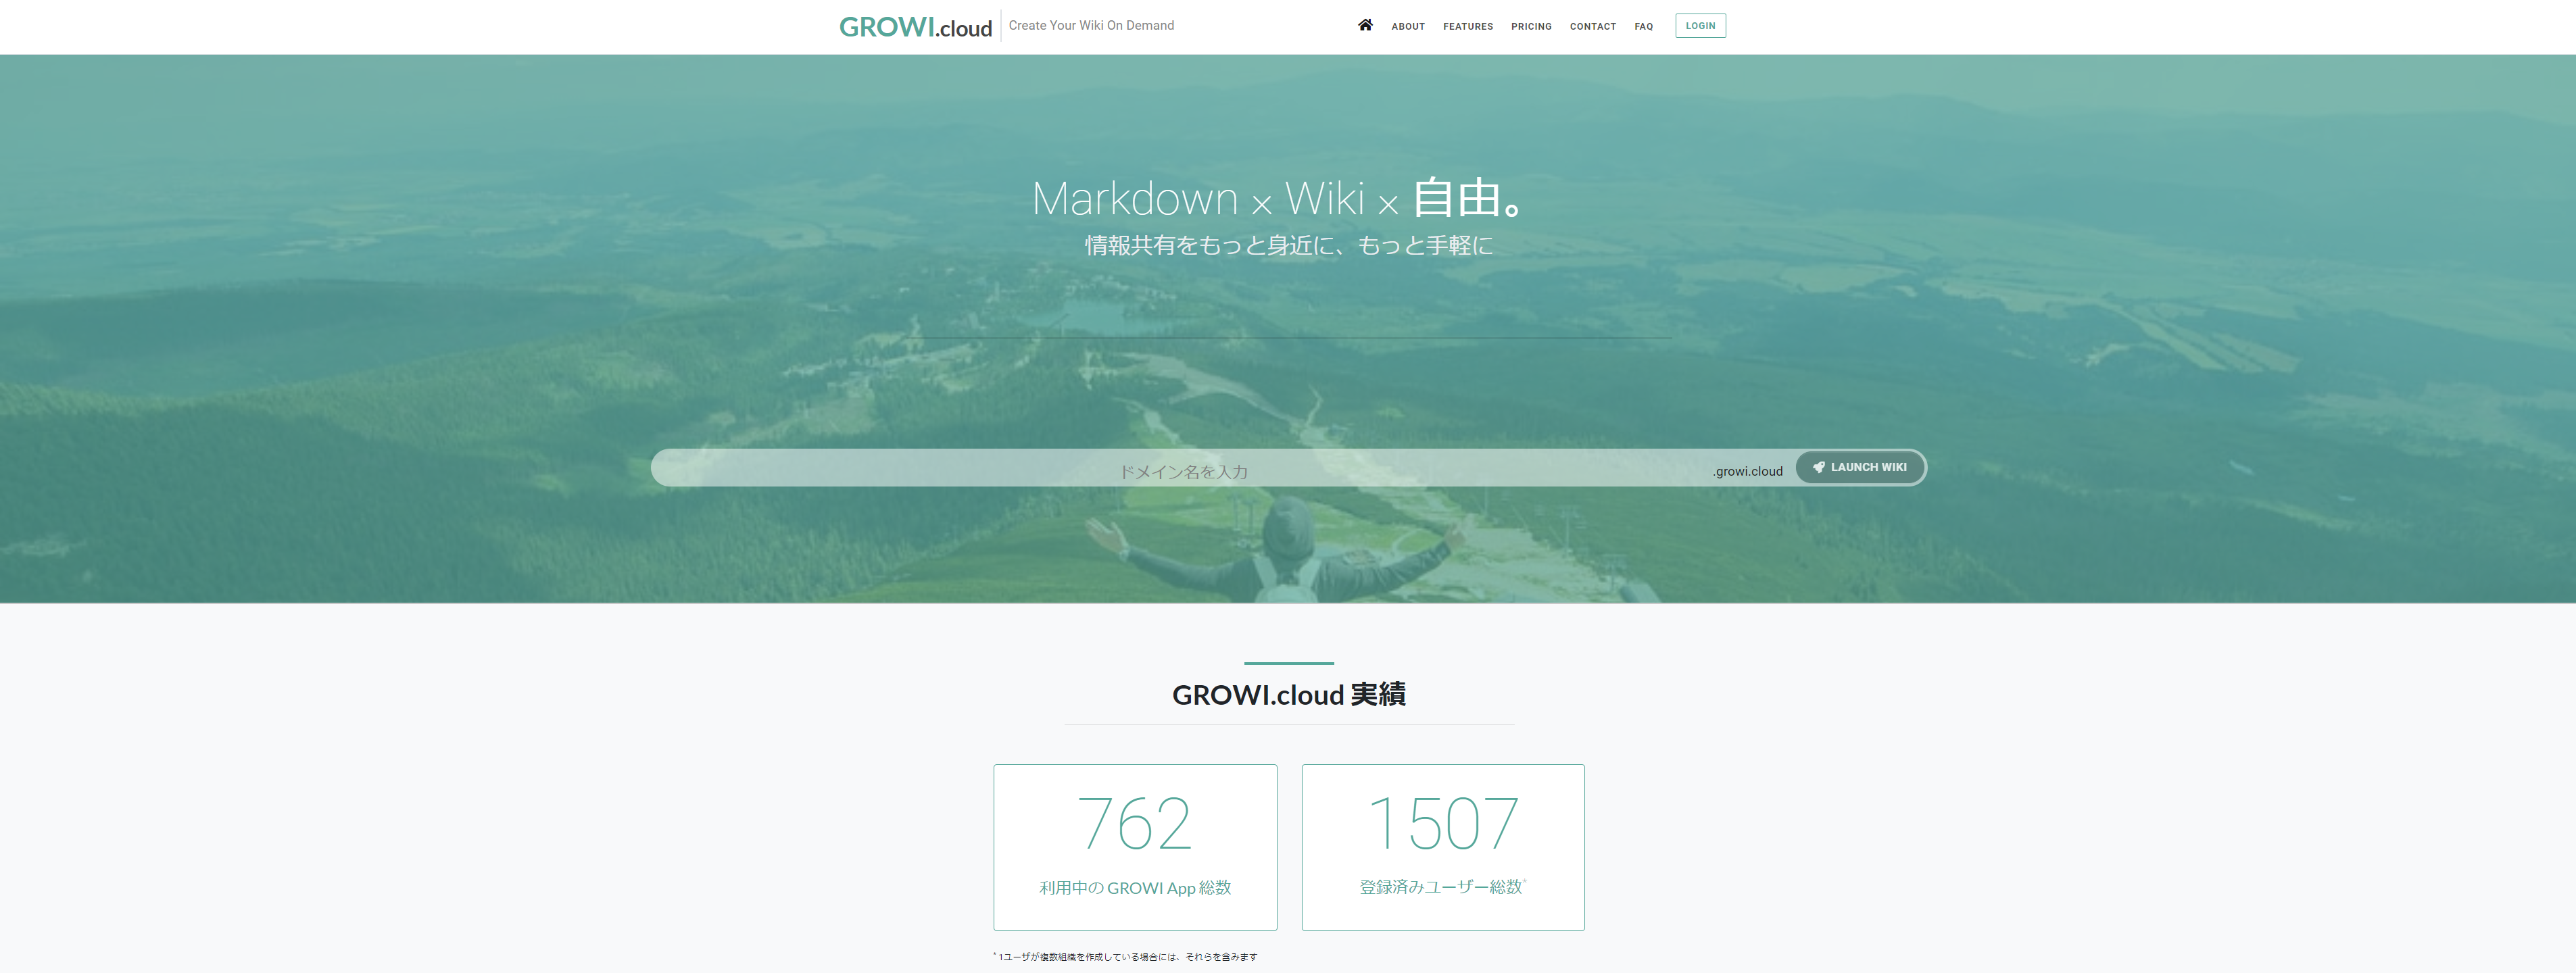 GROWI.cloud topページ